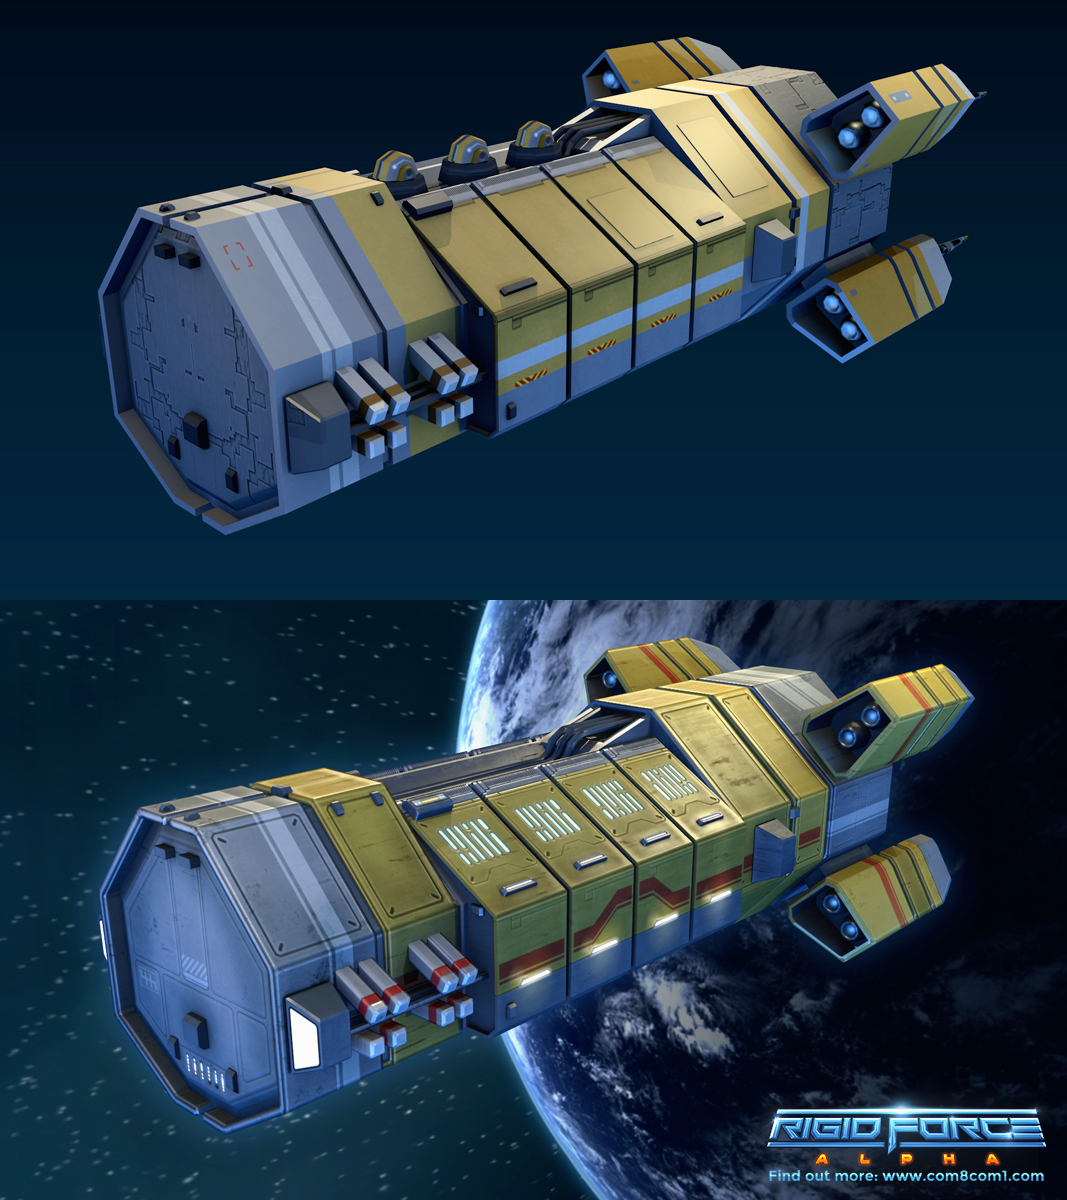 ATV6 - Armed Work in Progress: ATV6Ship